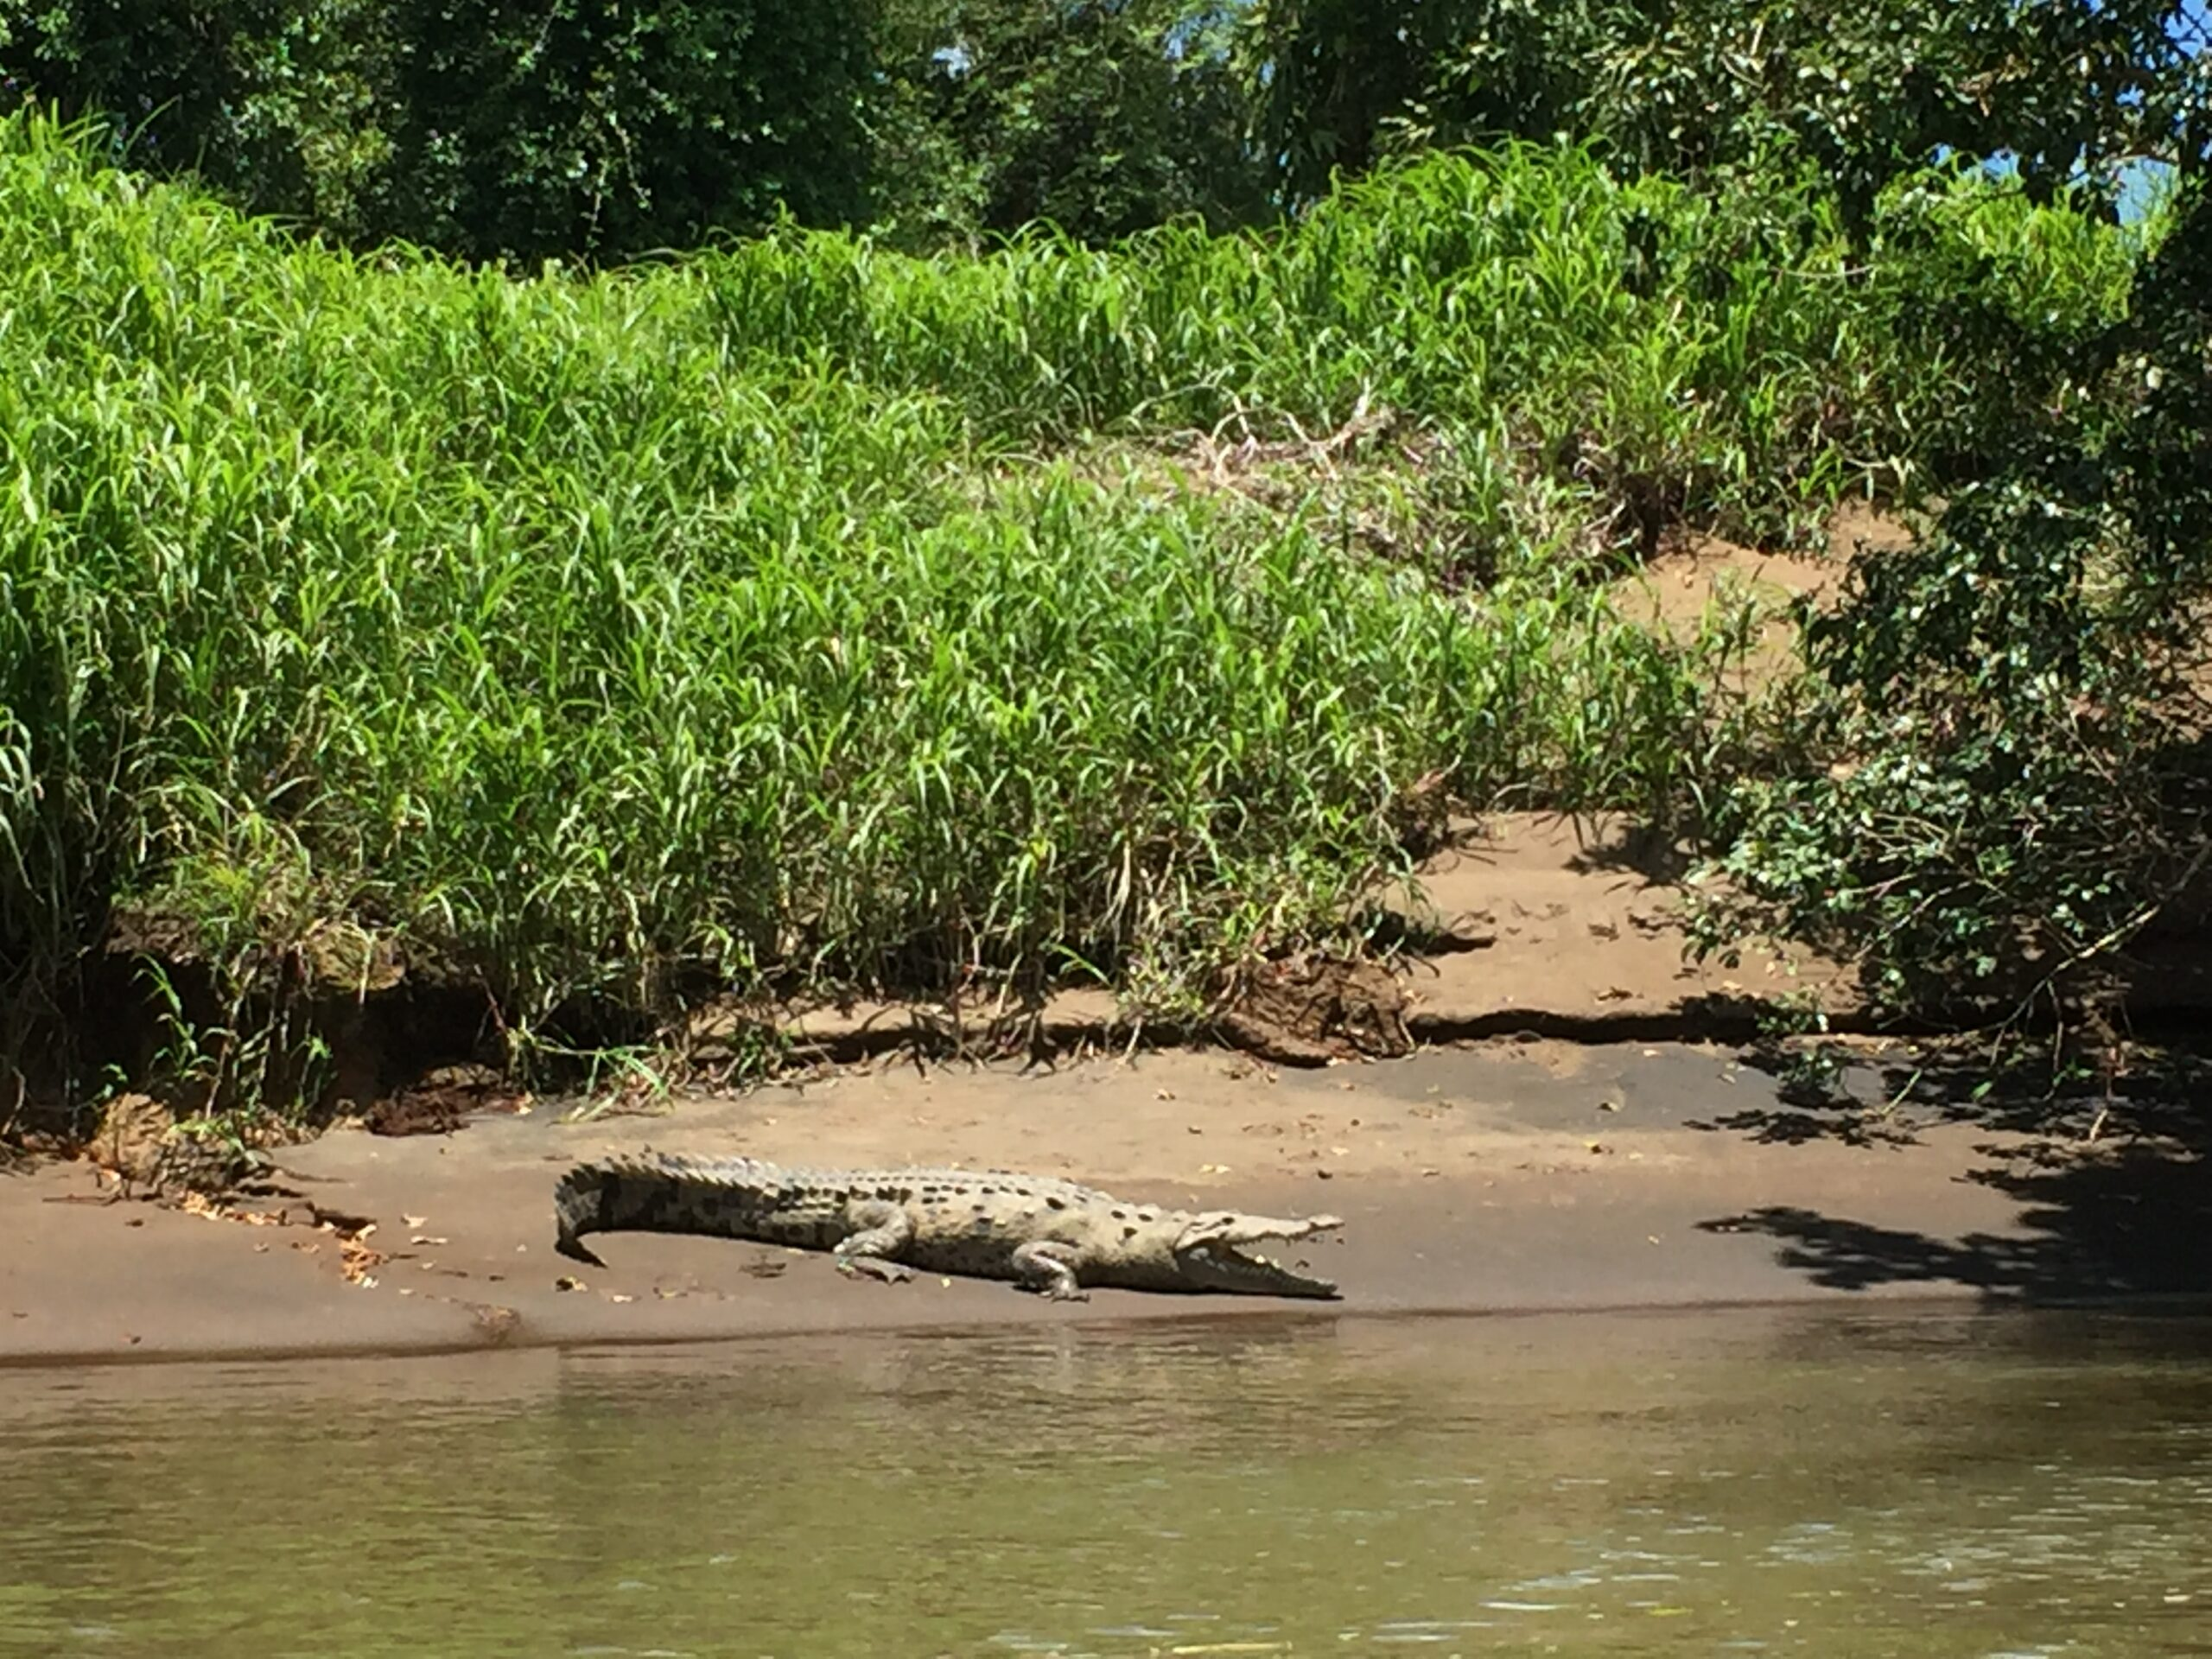 Croc just sitting on the river bank next to where our boat passed